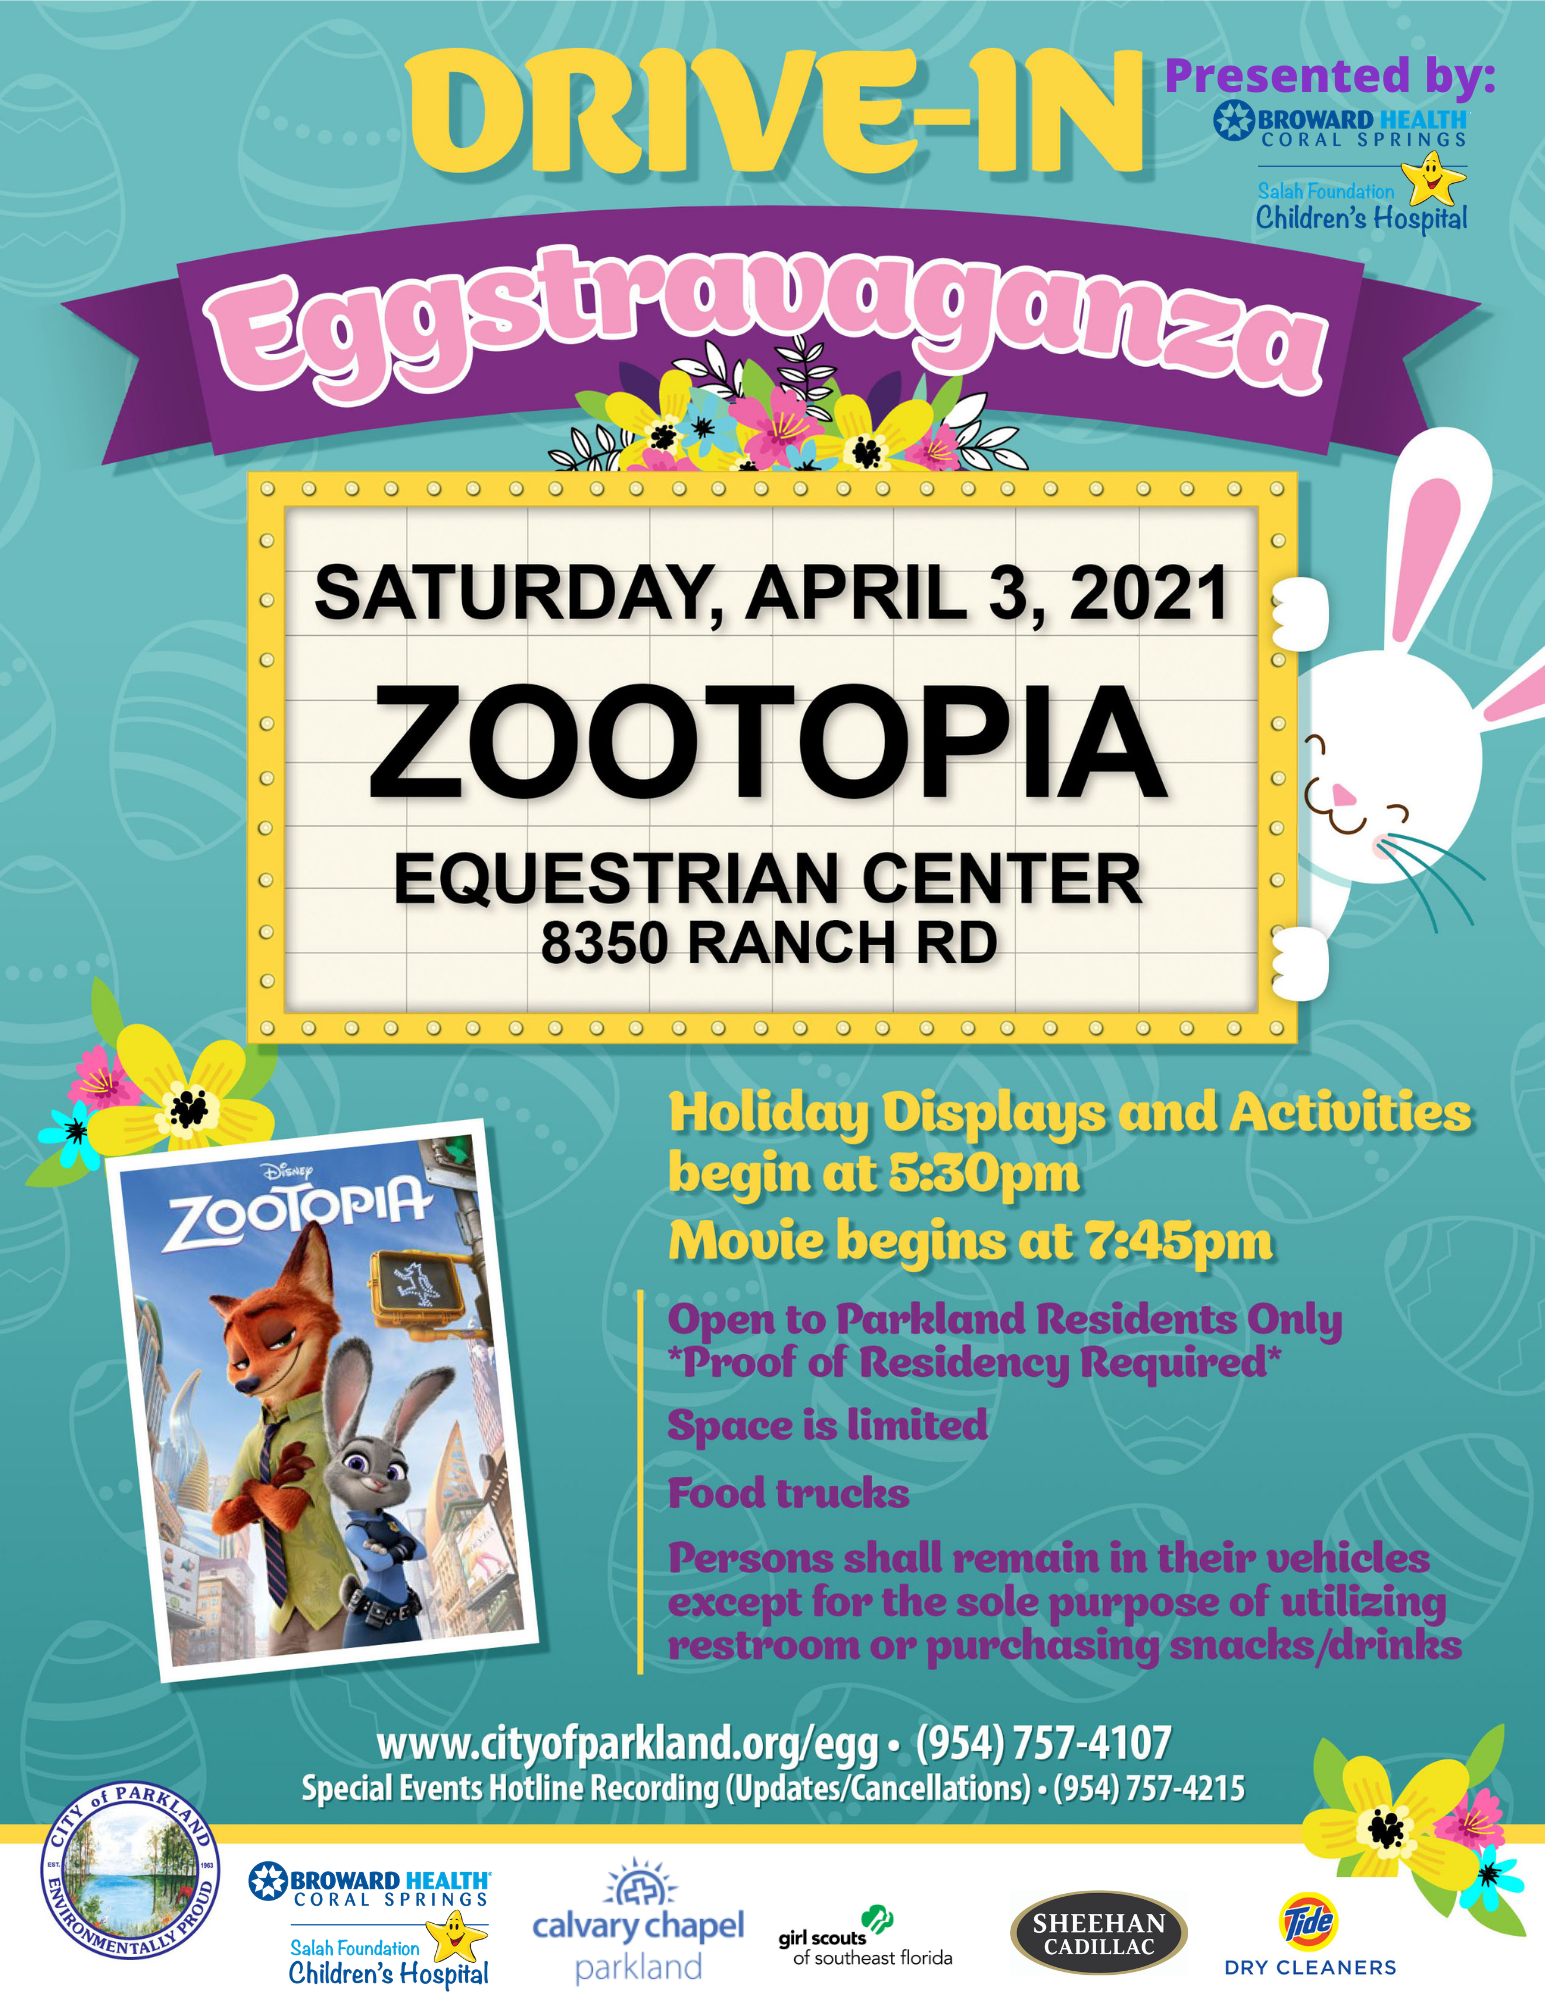 Drive-In Eggstravaganza Flyer